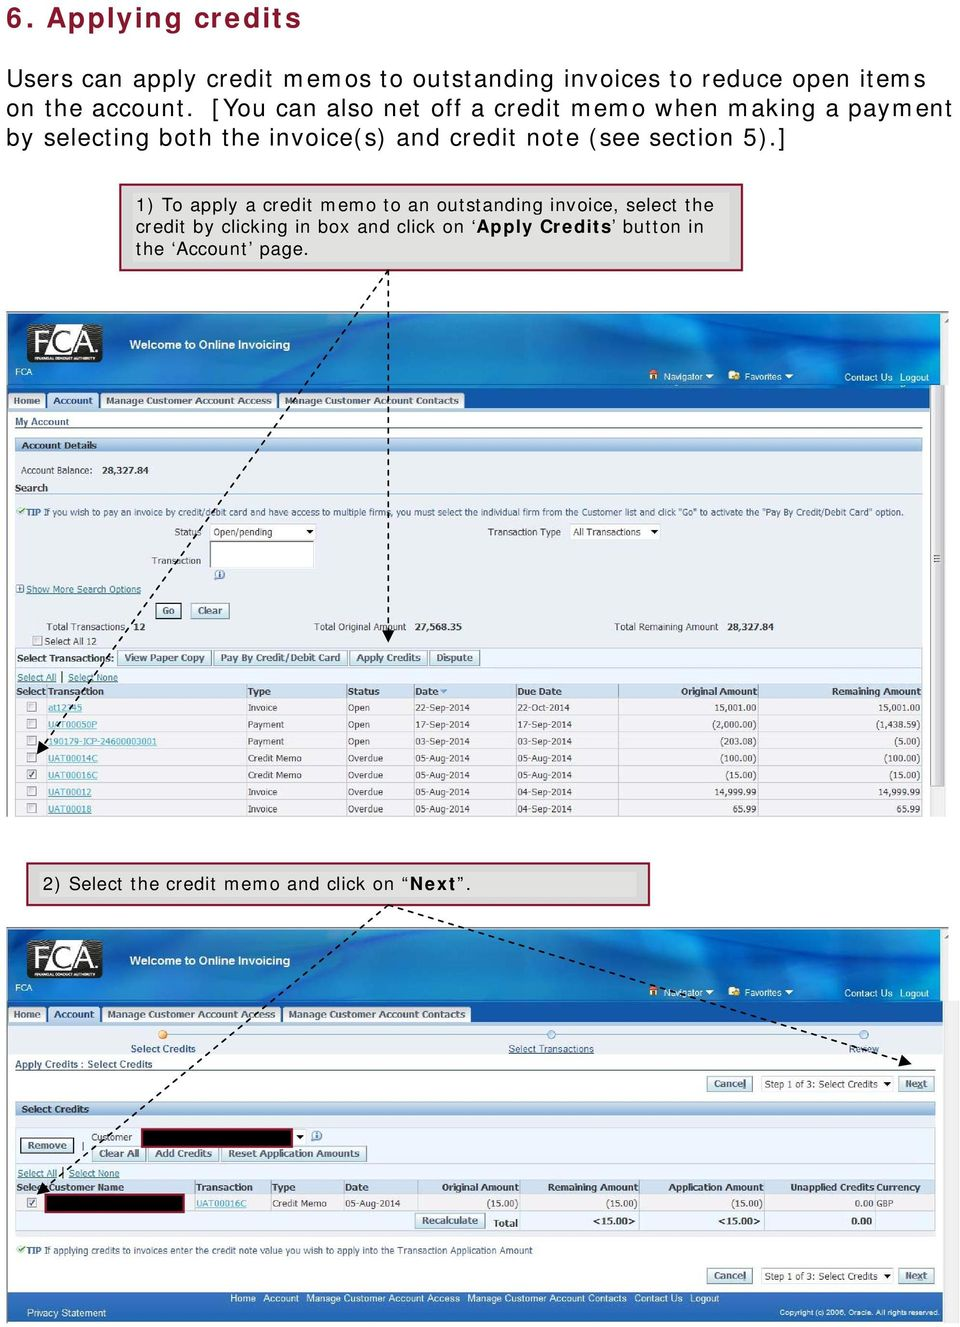 [You can also net off a credit memo when making a payment by selecting both the invoice(s) and credit